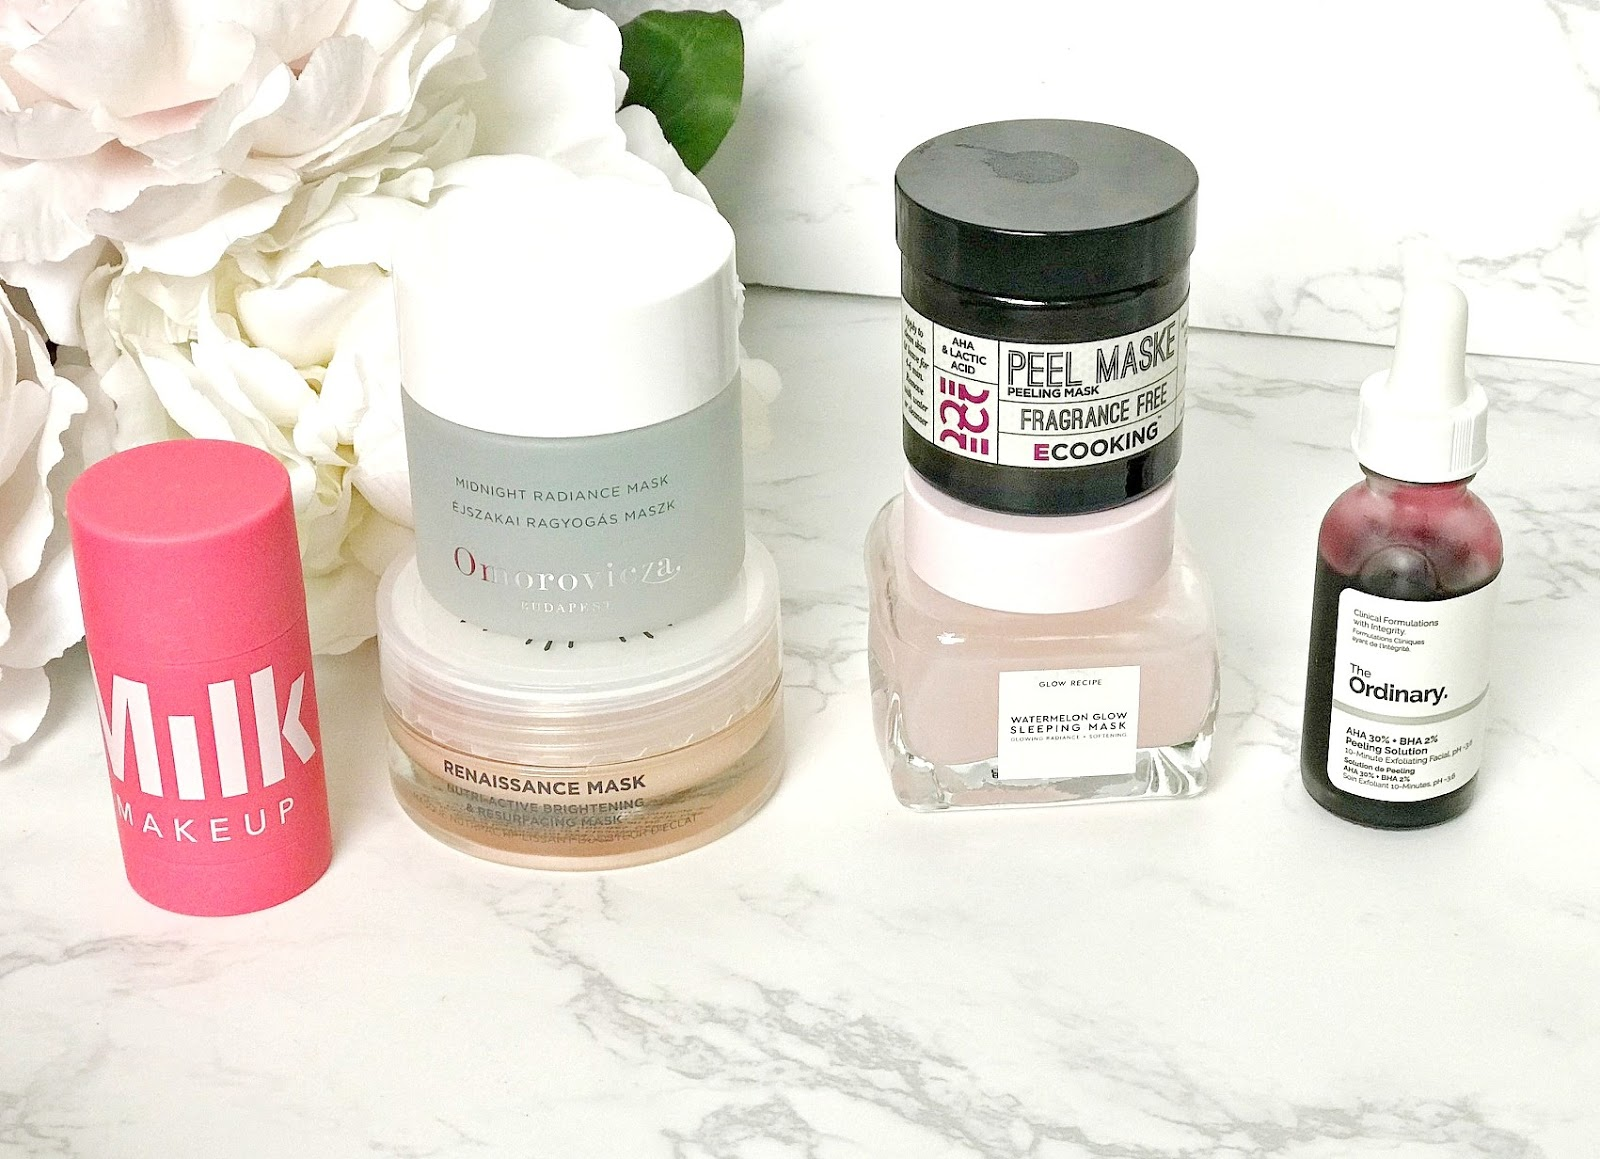 Cult Beauty Discount Code, Omorovicza Midnight Radiance Mask Review, Oskia Renaissance Mask Review, Ecooking Peeling Mask Review, Milk Makeup Watermelon Brightening Mask Review, Glow Recipe Watermelon Sleeping Mask Review